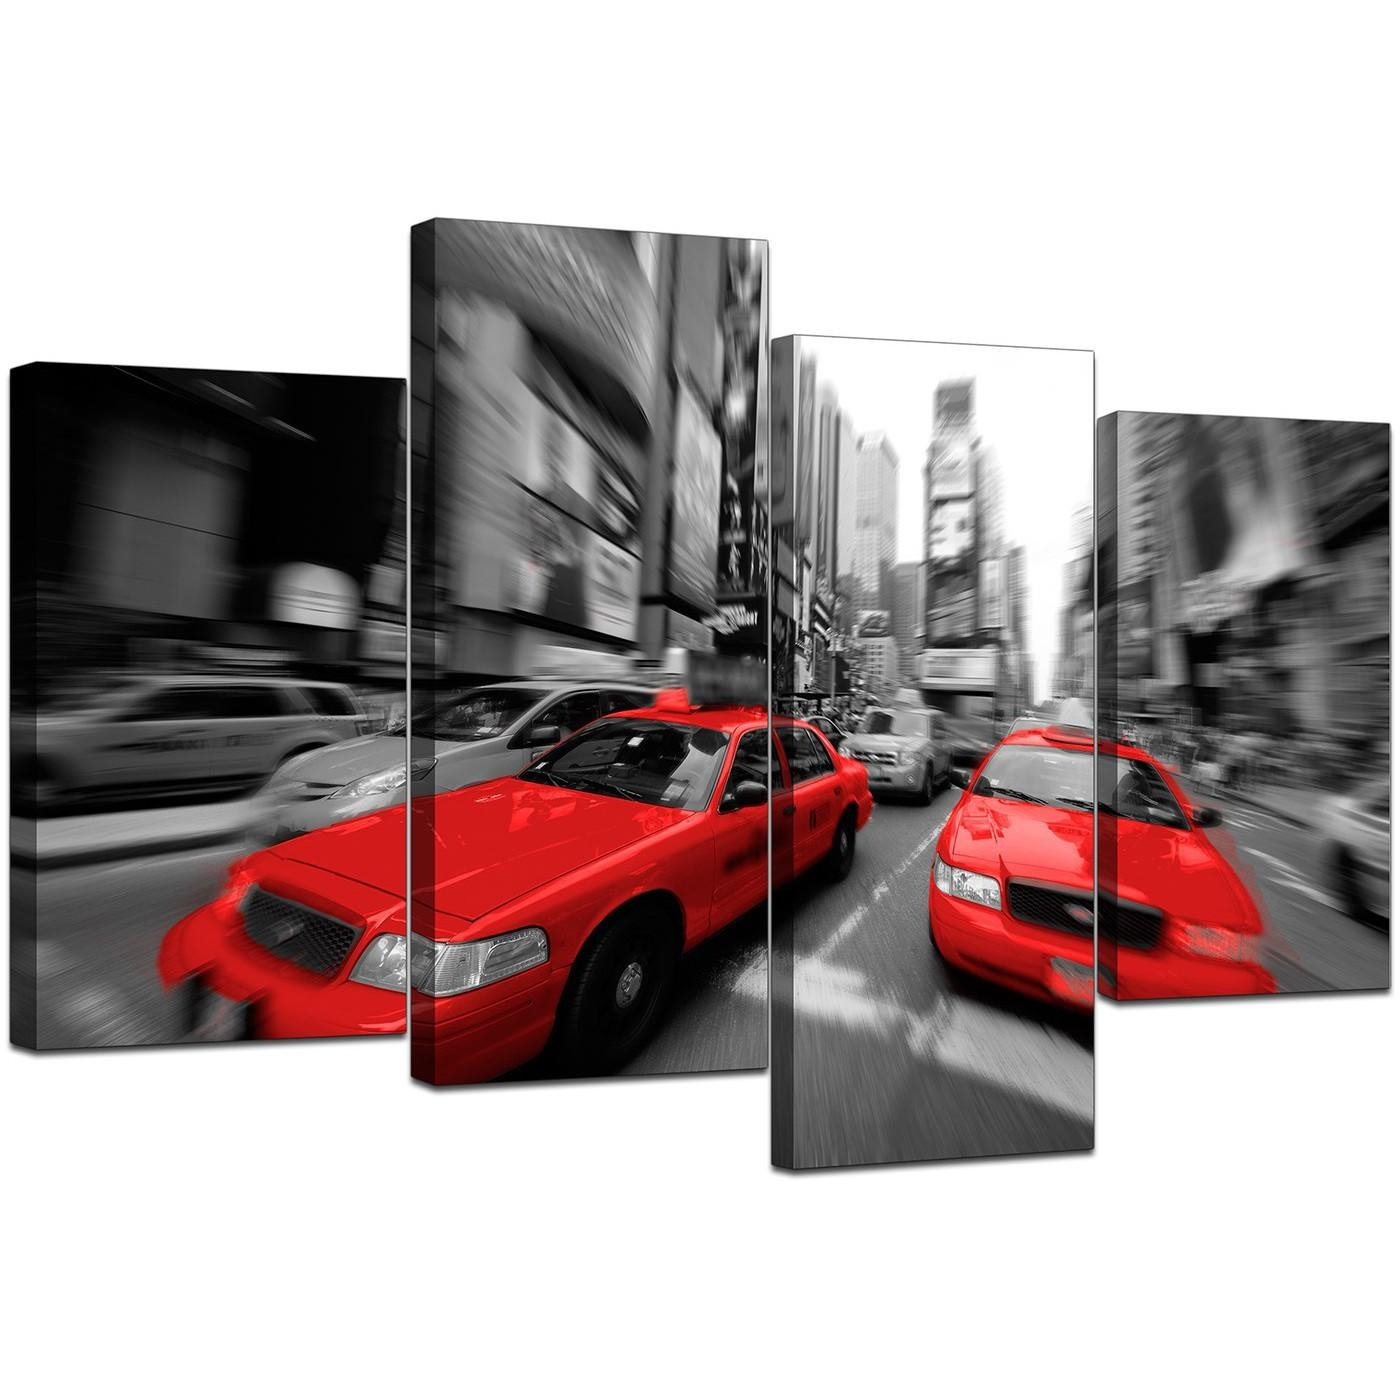 New York Canvas Prints In Black White & Red – For Living Room With Black And White New York Canvas Wall Art (Image 12 of 20)